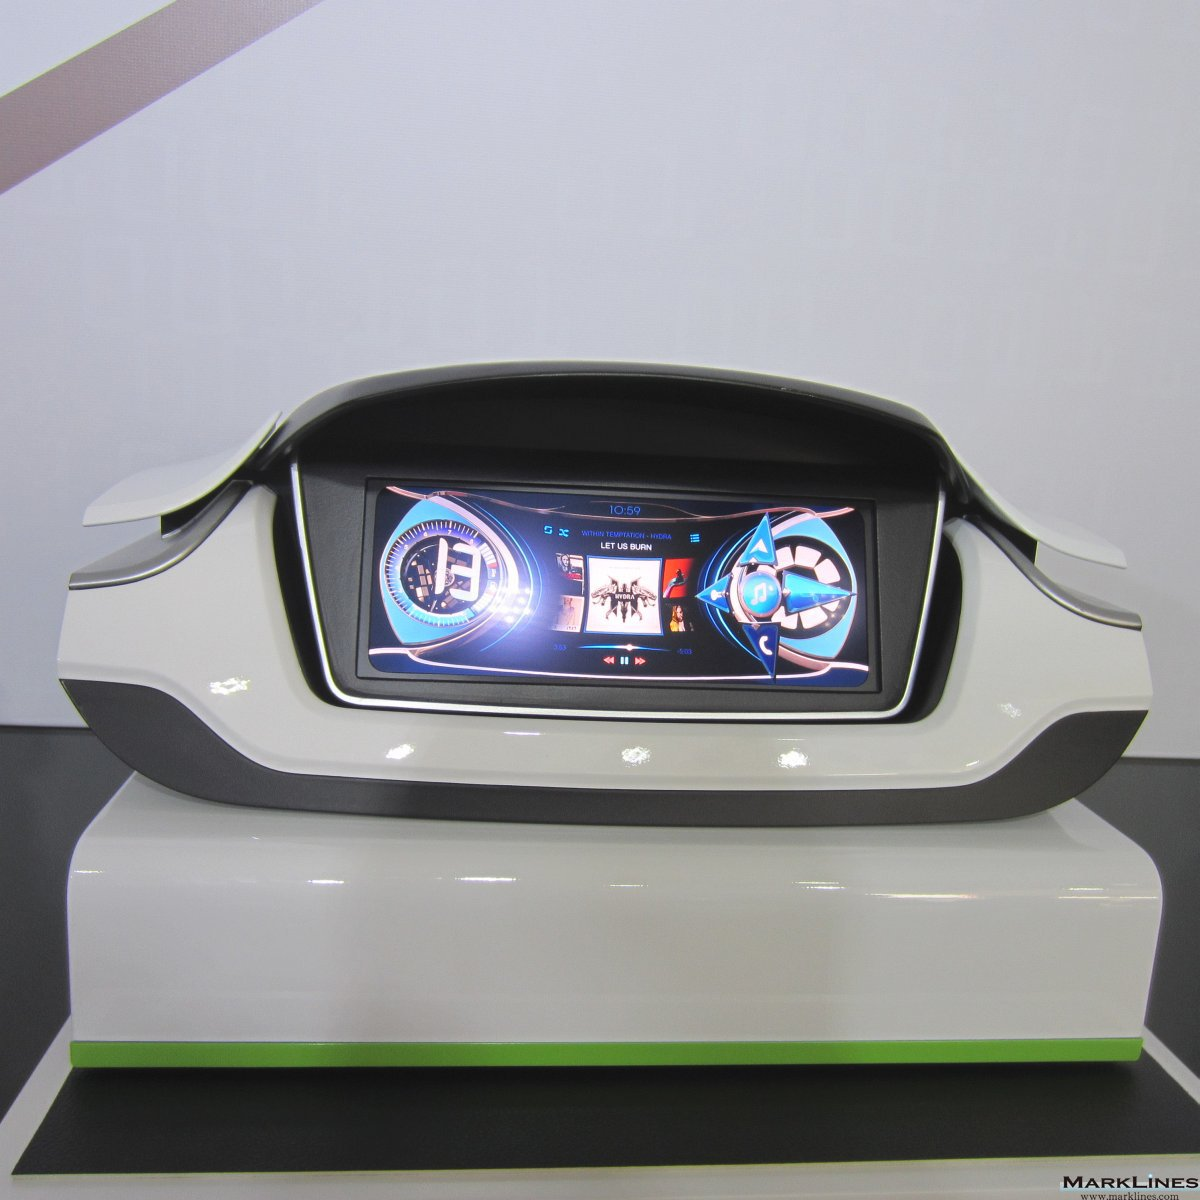 Visteon Corporation Marklines Automotive Industry Portal Motorcyle Alarm 8211 The Circuit Board And Switches Must Be Protected From Elements 2016 Auto China Beijing International Exhibition